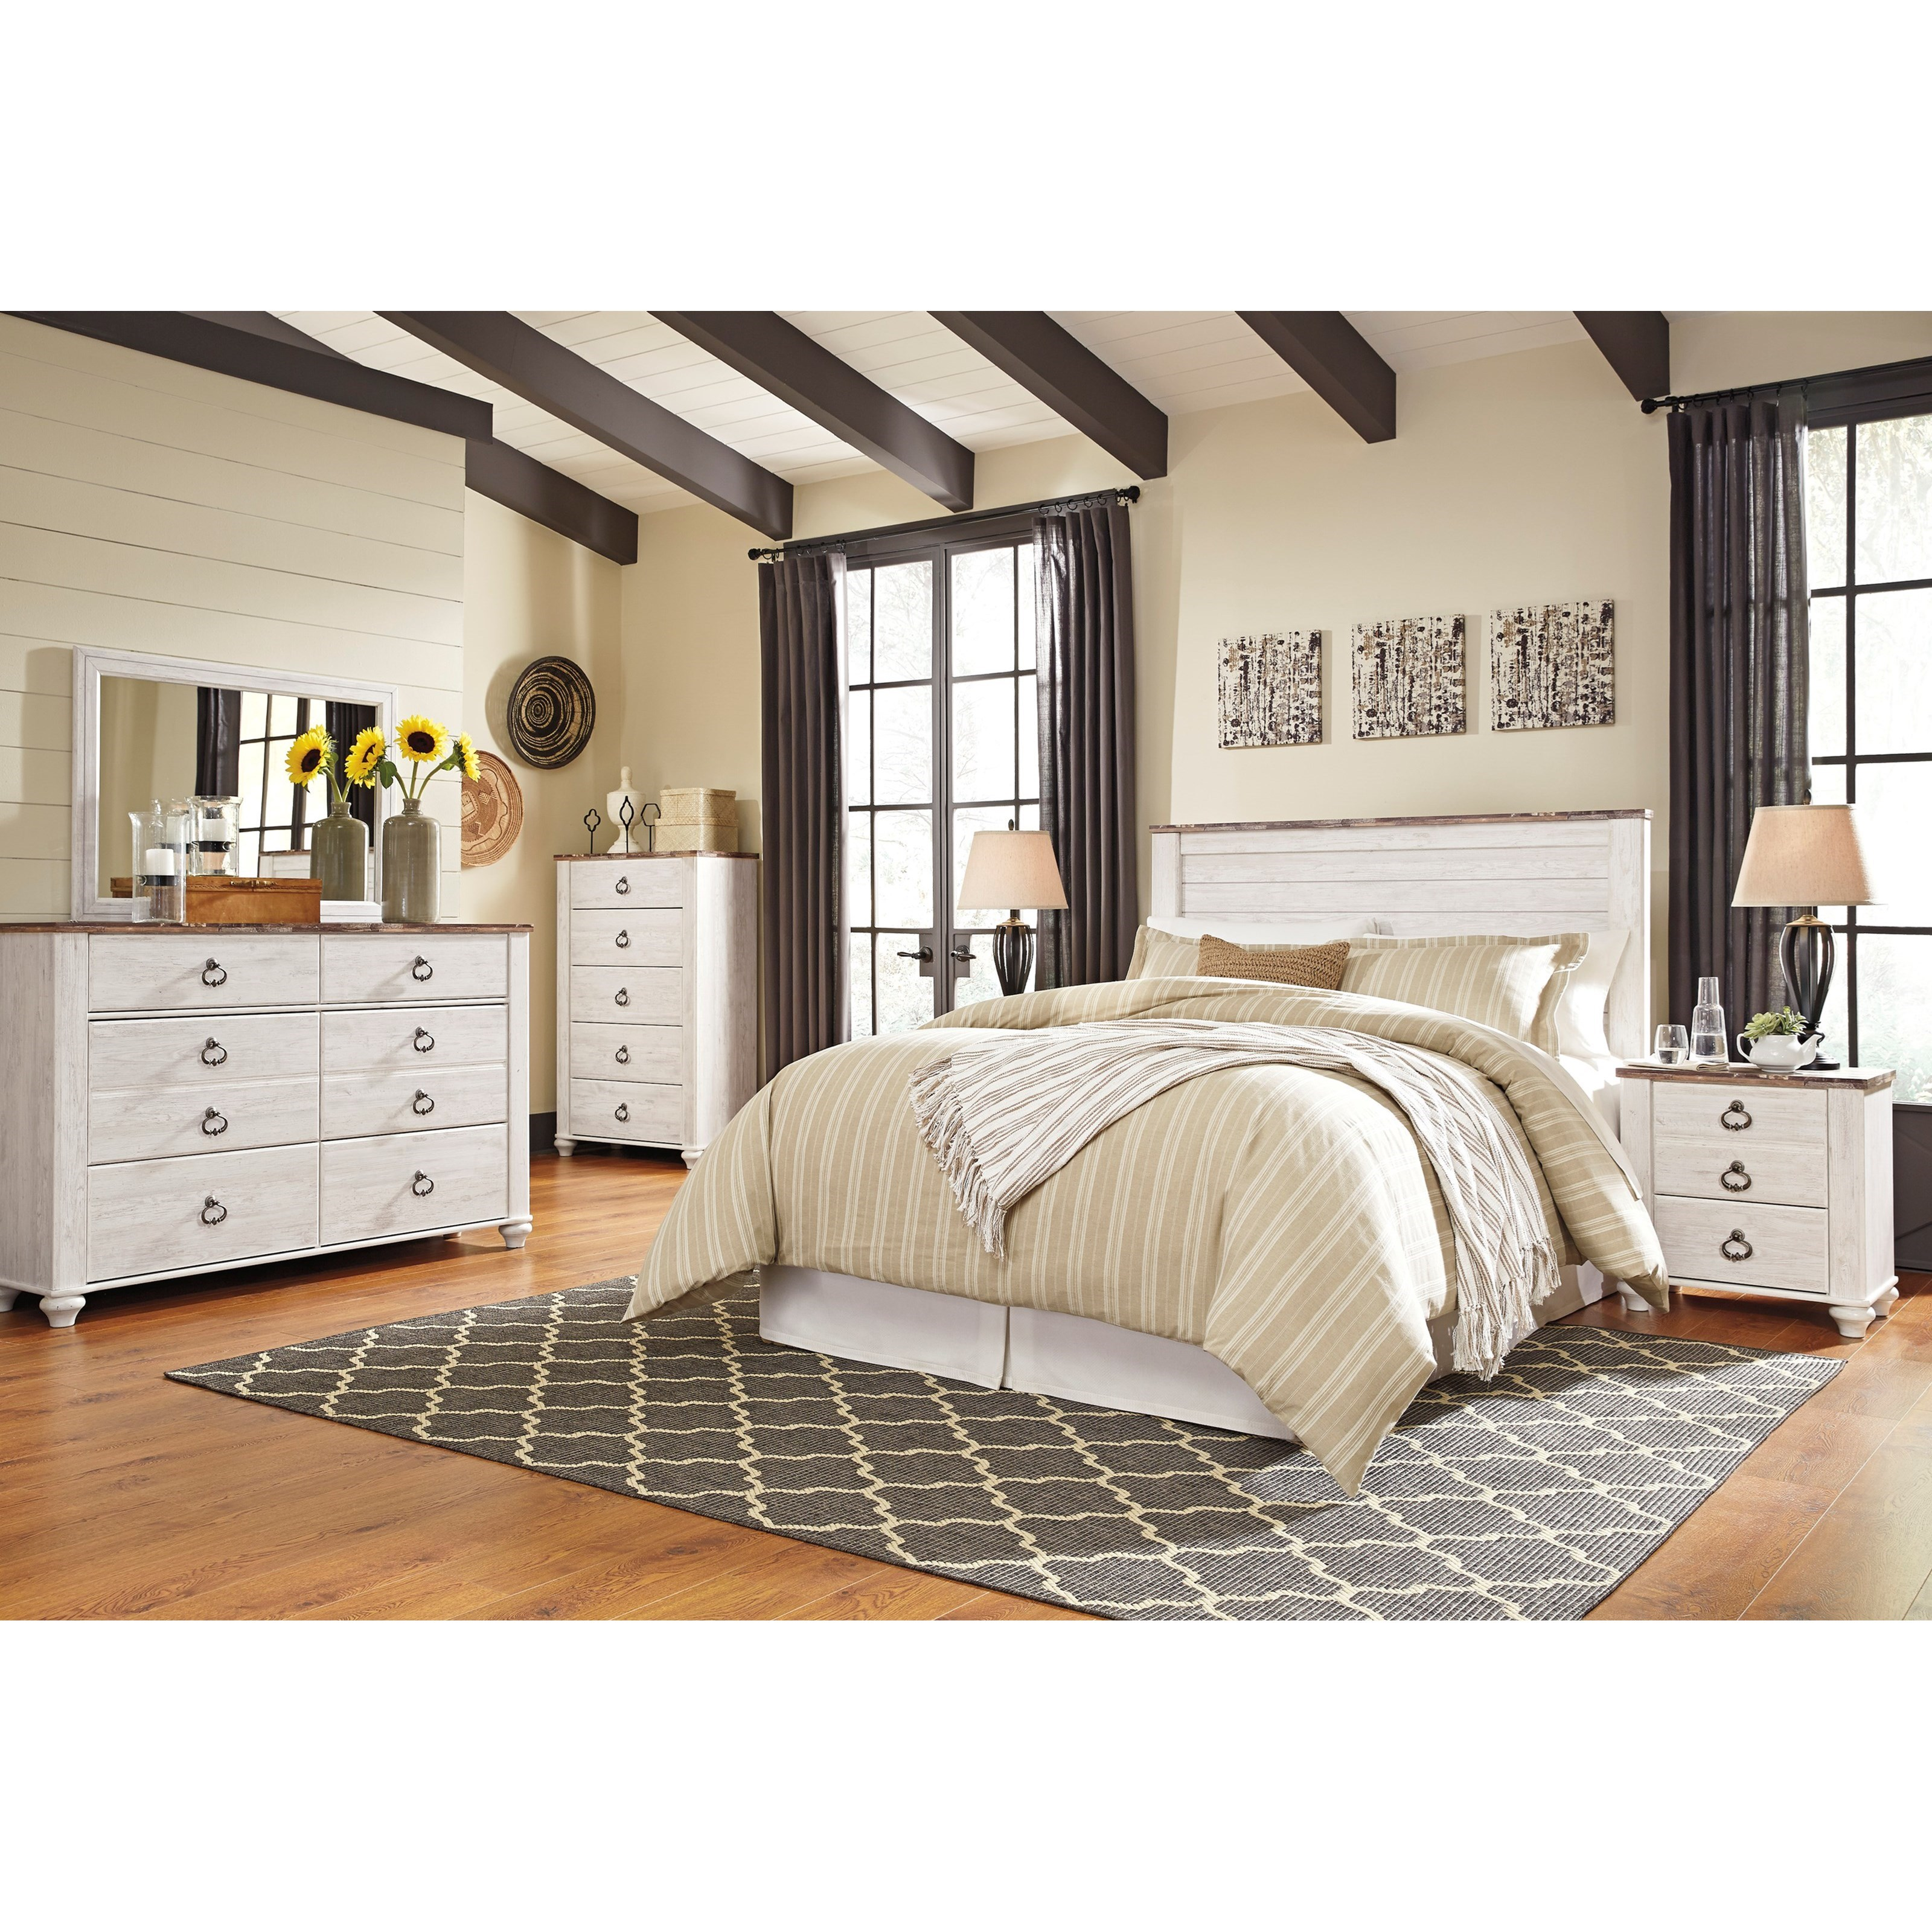 Willowton Queen/Full Bedroom Group by Signature Design by Ashley at Zak's Warehouse Clearance Center